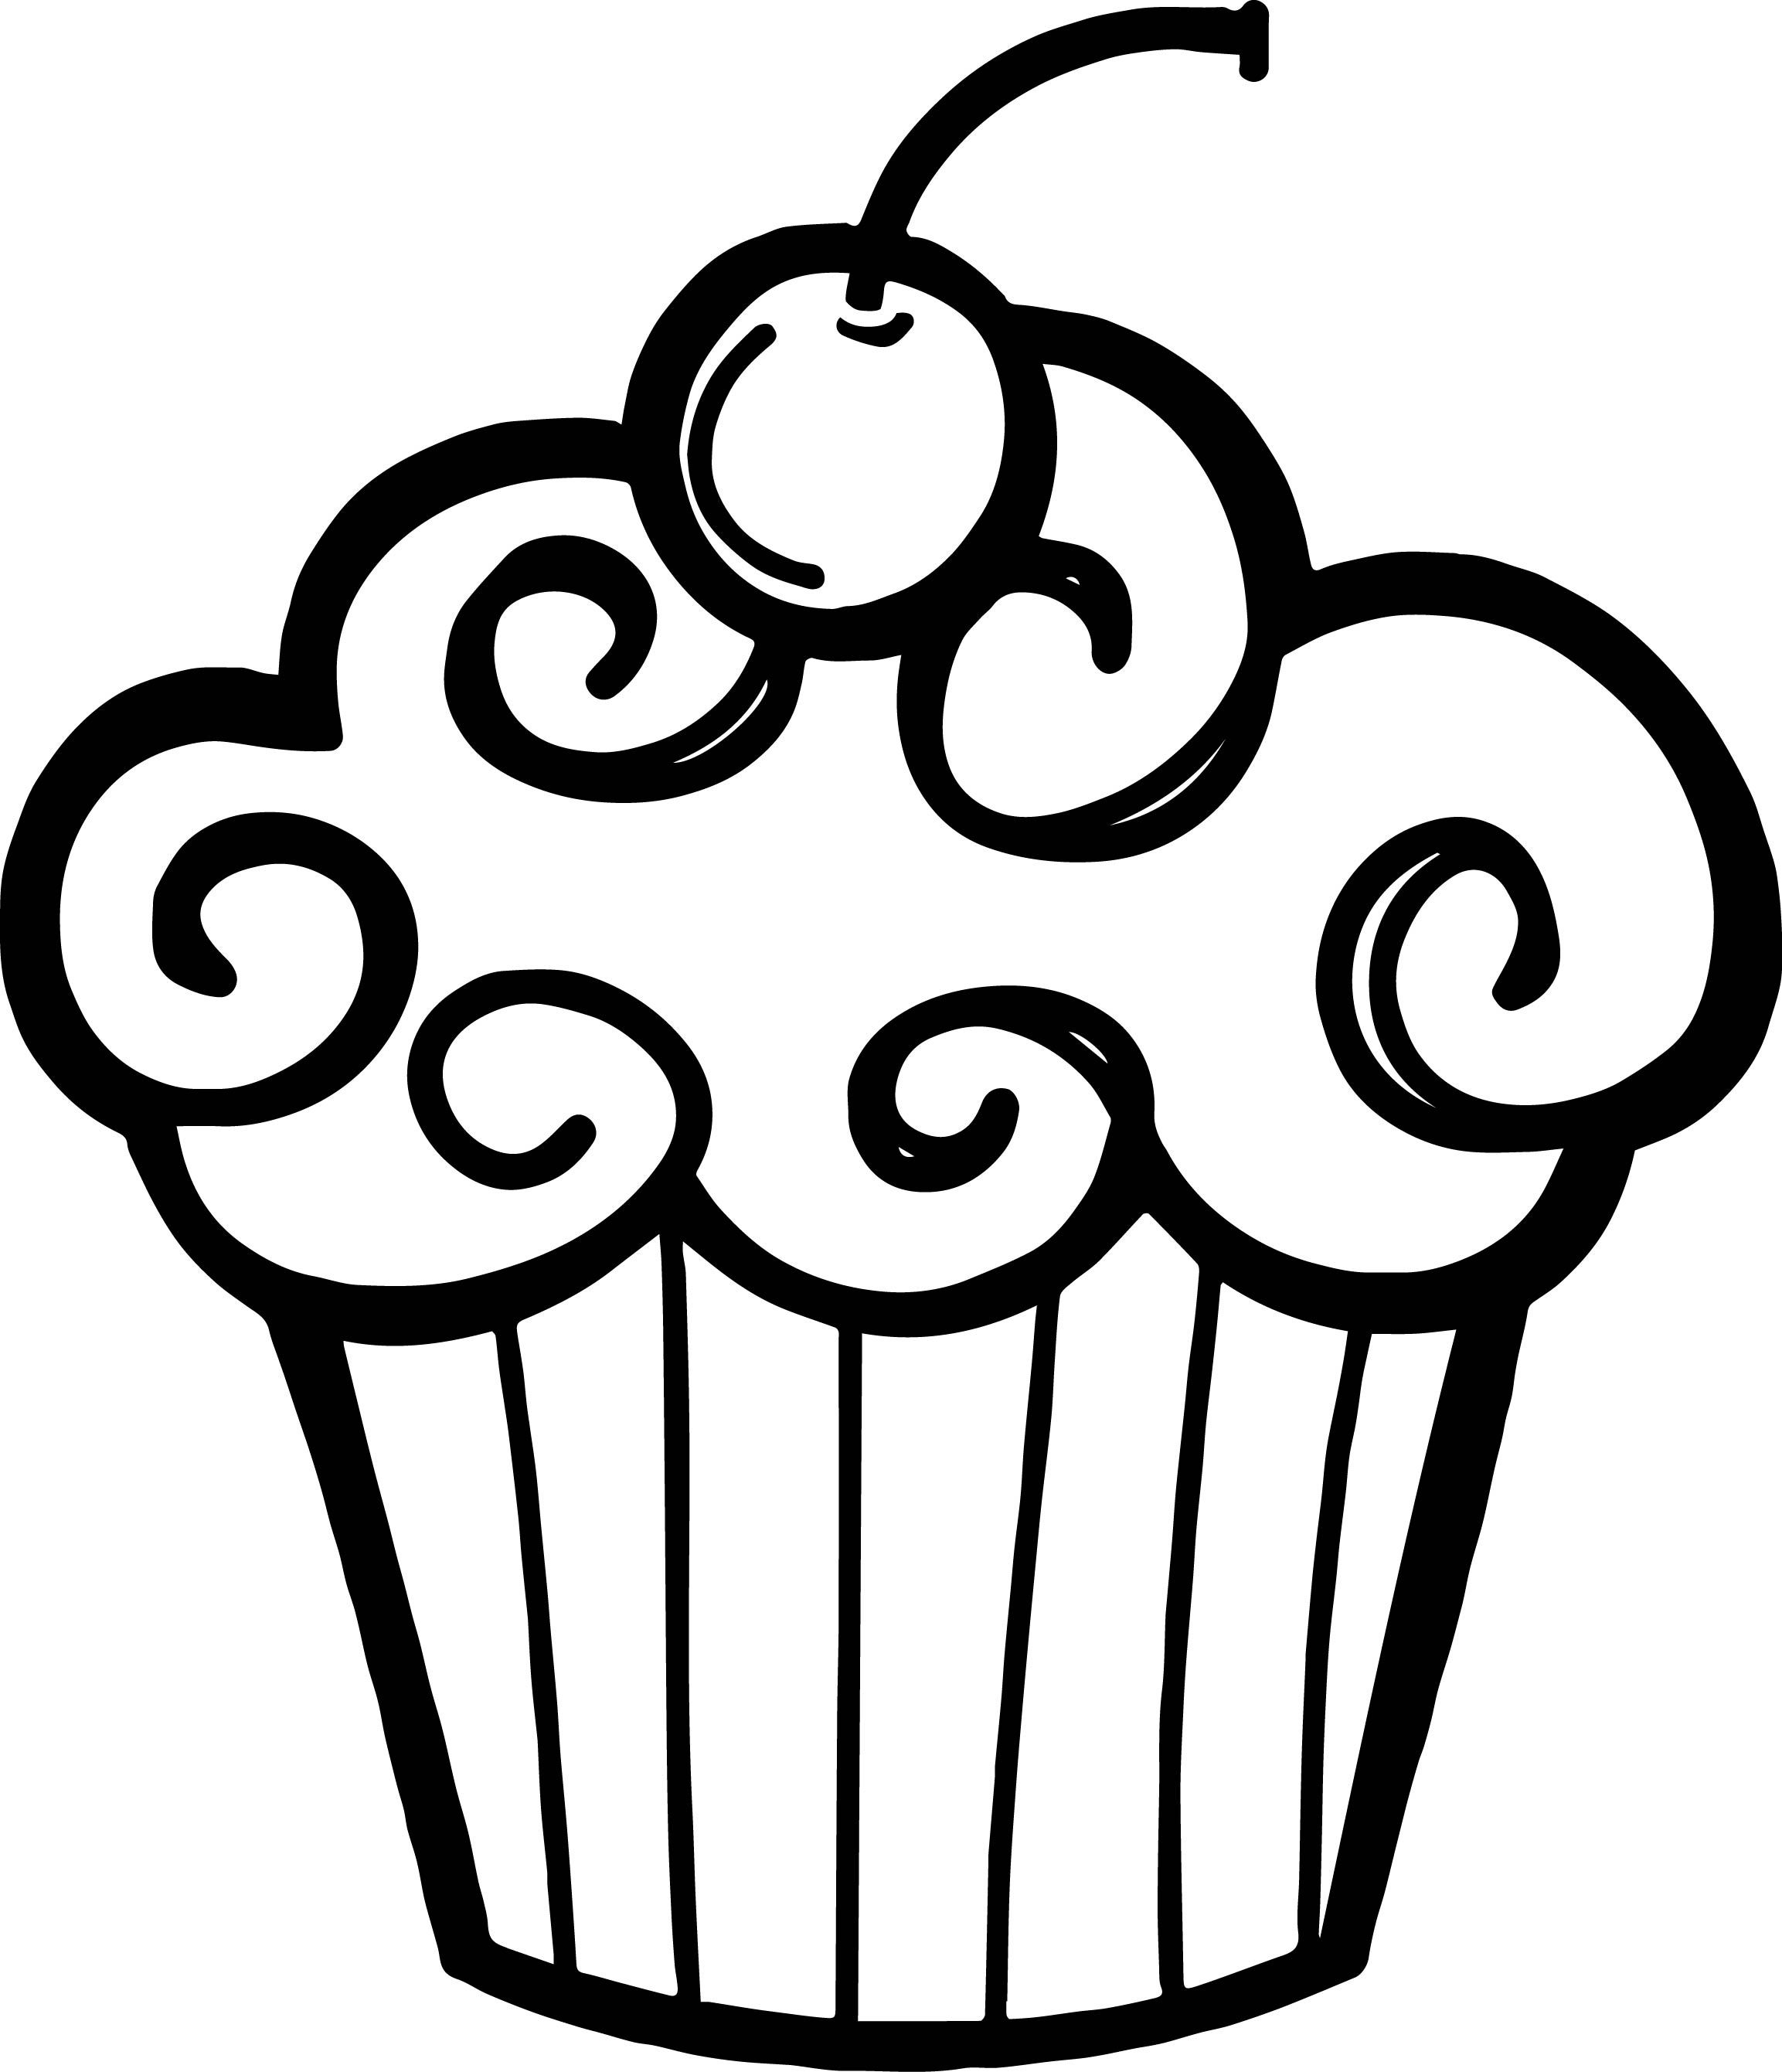 2306x2681 Image Result For Images Of Cupcakes Drawings Crafty Little Chick